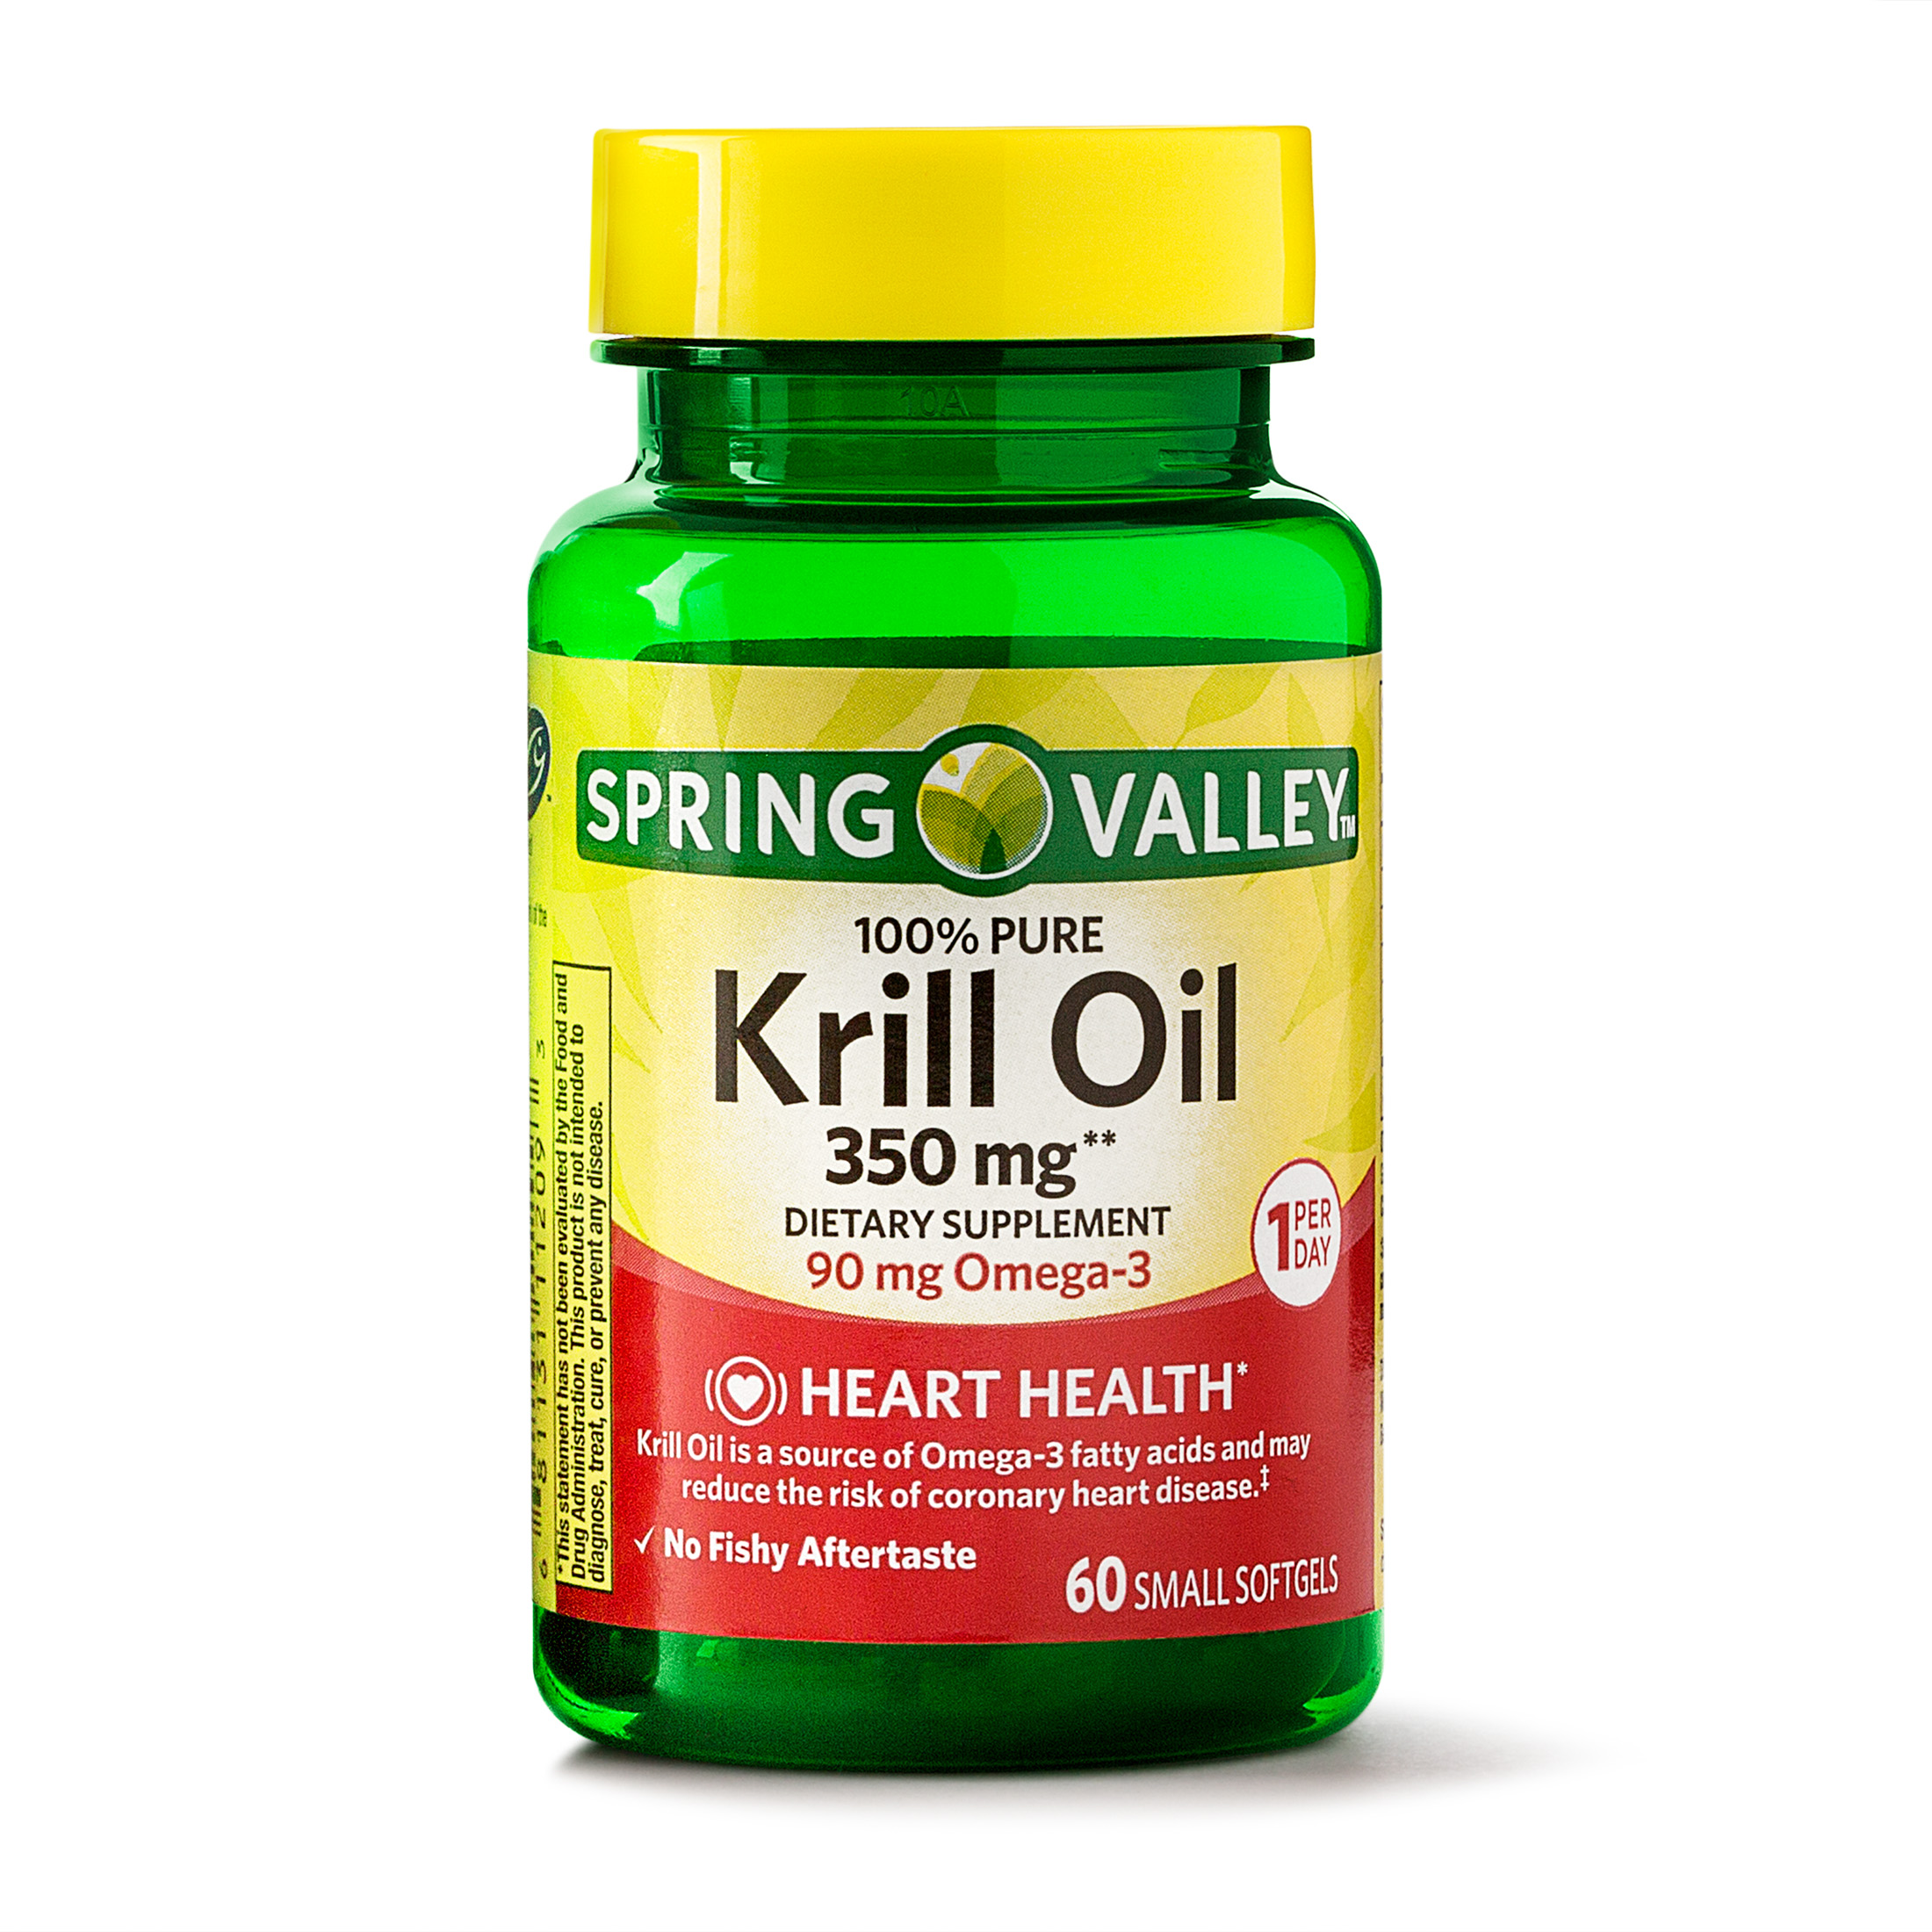 Spring Valley Krill Oil, 350mg per Serving, 60ct